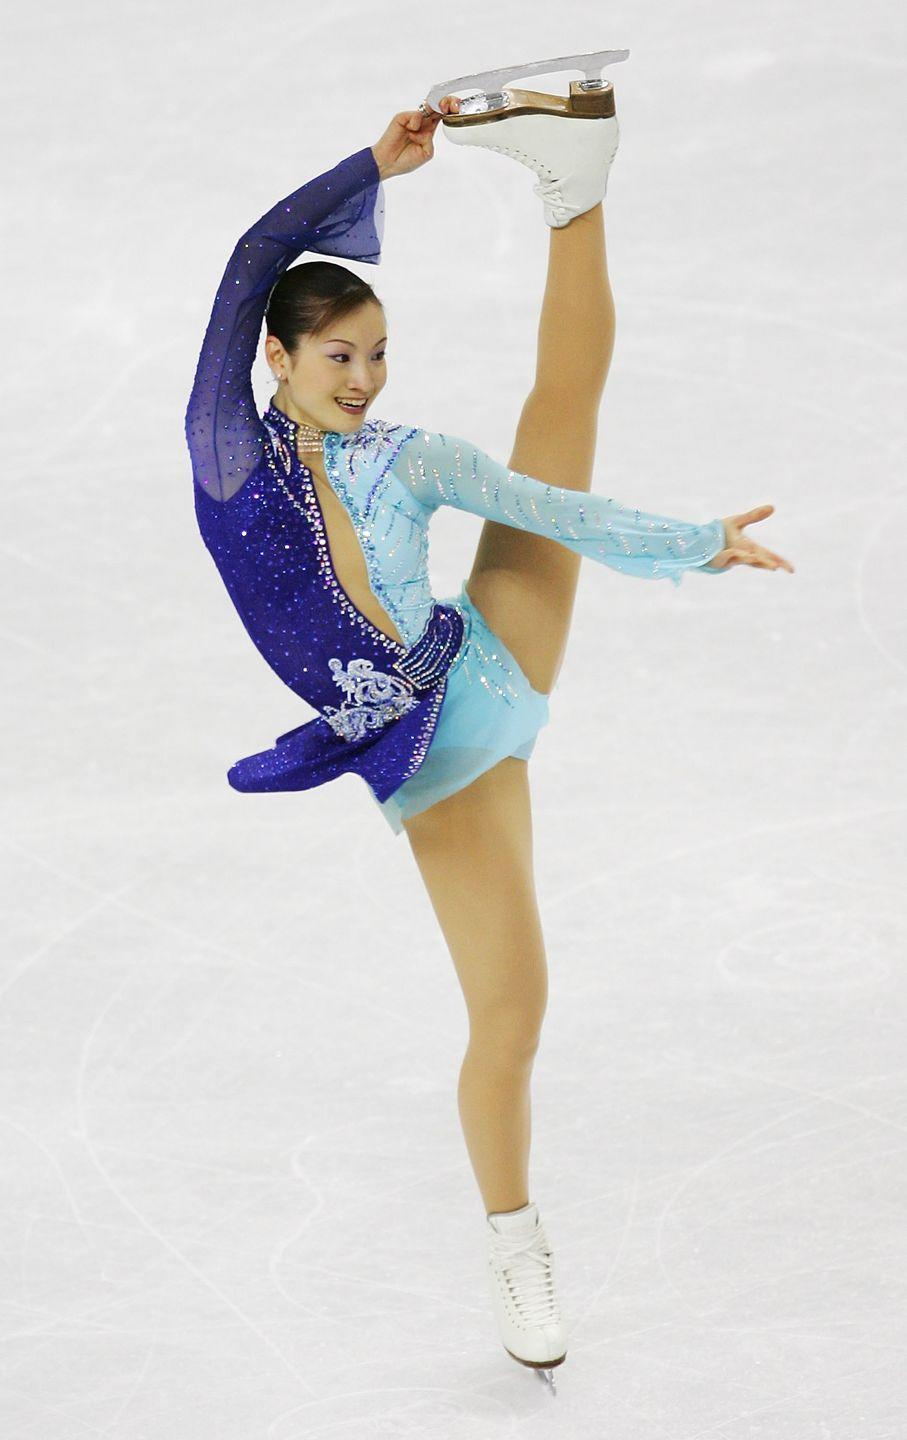 <p>Shizuka Arakawa won the first gold medal in figure skating for Japan, and the second medal overall for the country in the sport, during the 2006 Olympics in Torino, Italy. </p>